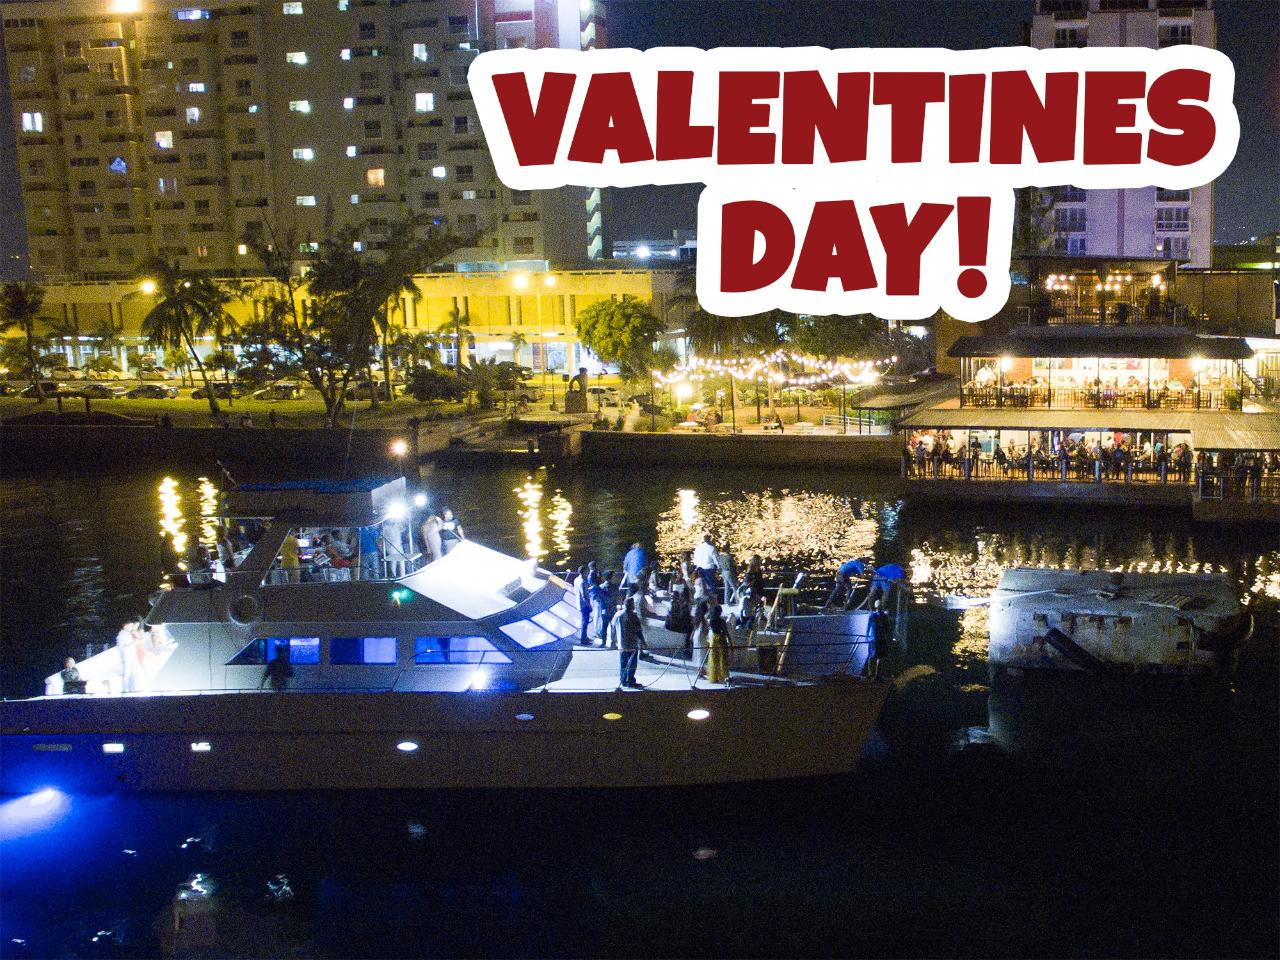 VALENTINES DAY | Loose Cannon's Romantic Evening Cruise